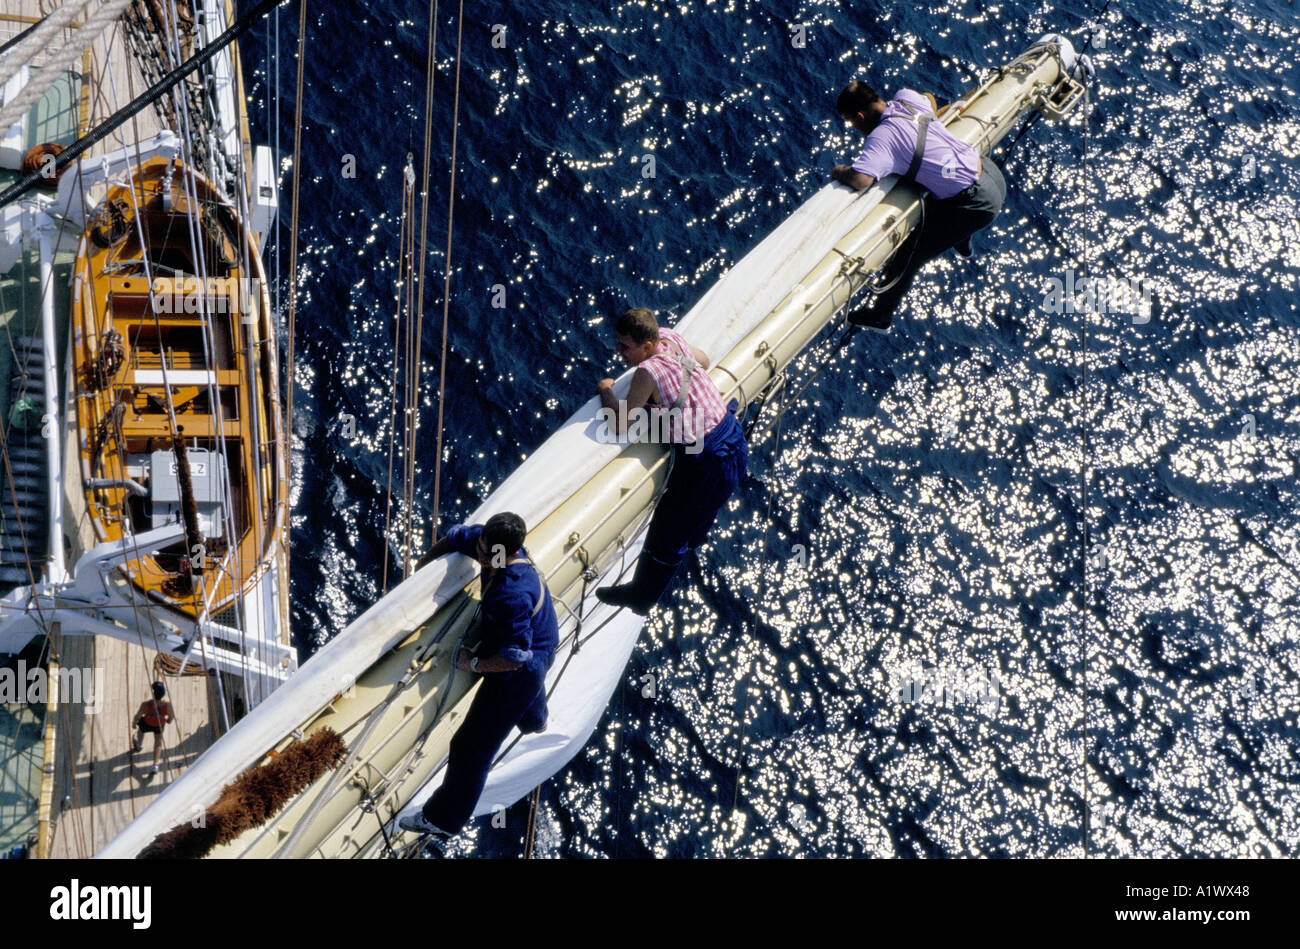 TALL SHIPS RACE 1994 CREWMEN ATOP MAST HAULING SAILS ABOARD THE S V MLODZIEZY ONE OF THE HISTORIC SAILING SHIPS TAKING PART IN THE ANNUAL CUTTY SARK TALL SHIPS RACE AT SEA BETWEEN PORTSMOUTH ENGLAND LA CORUNA SPAIN - Stock Image